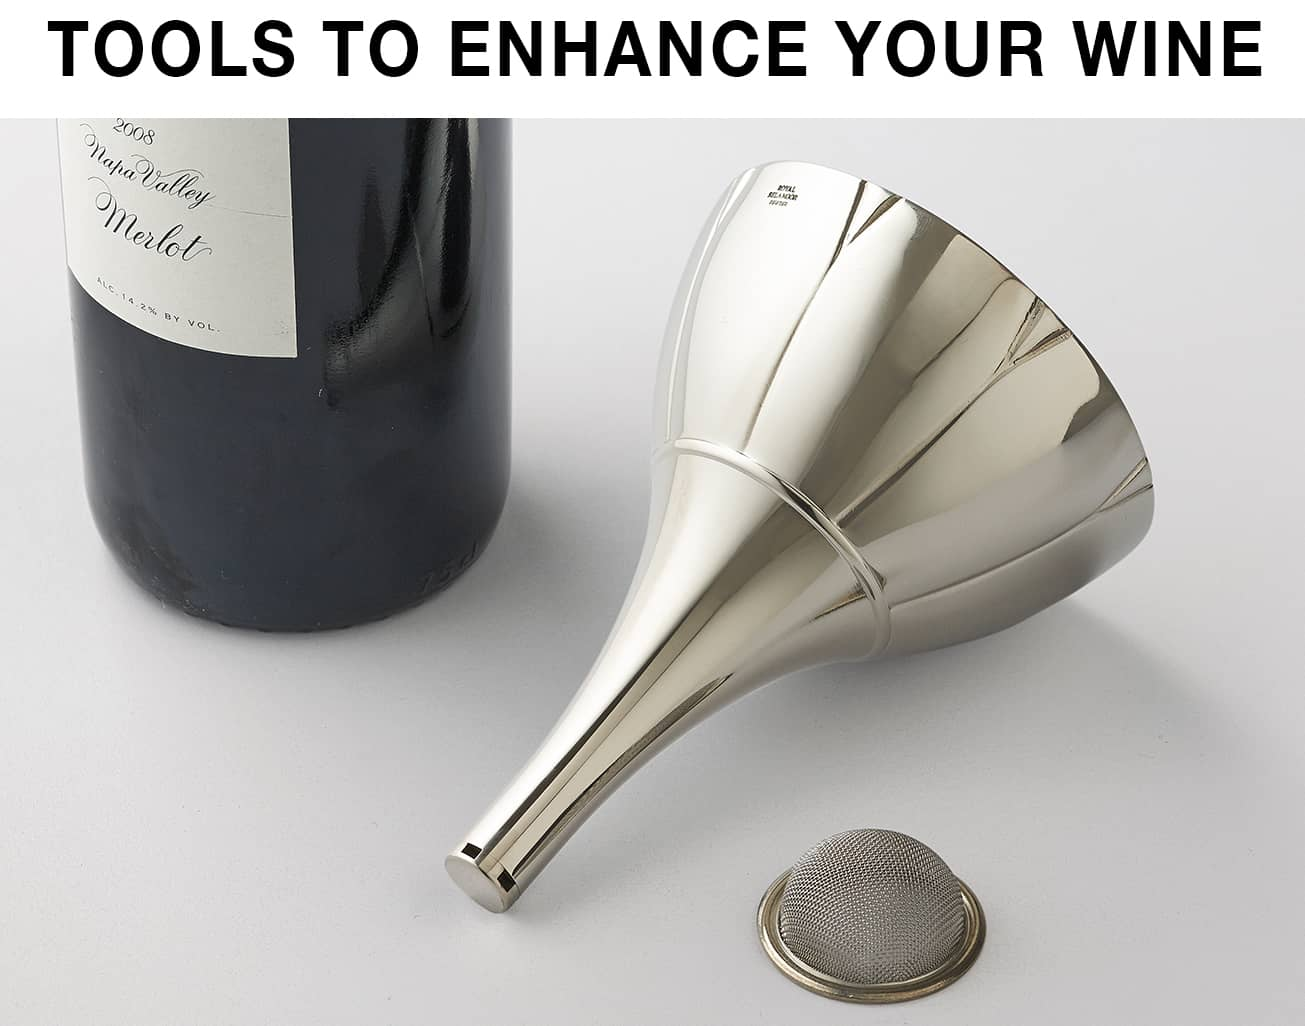 Tools to Enhance Your Wine